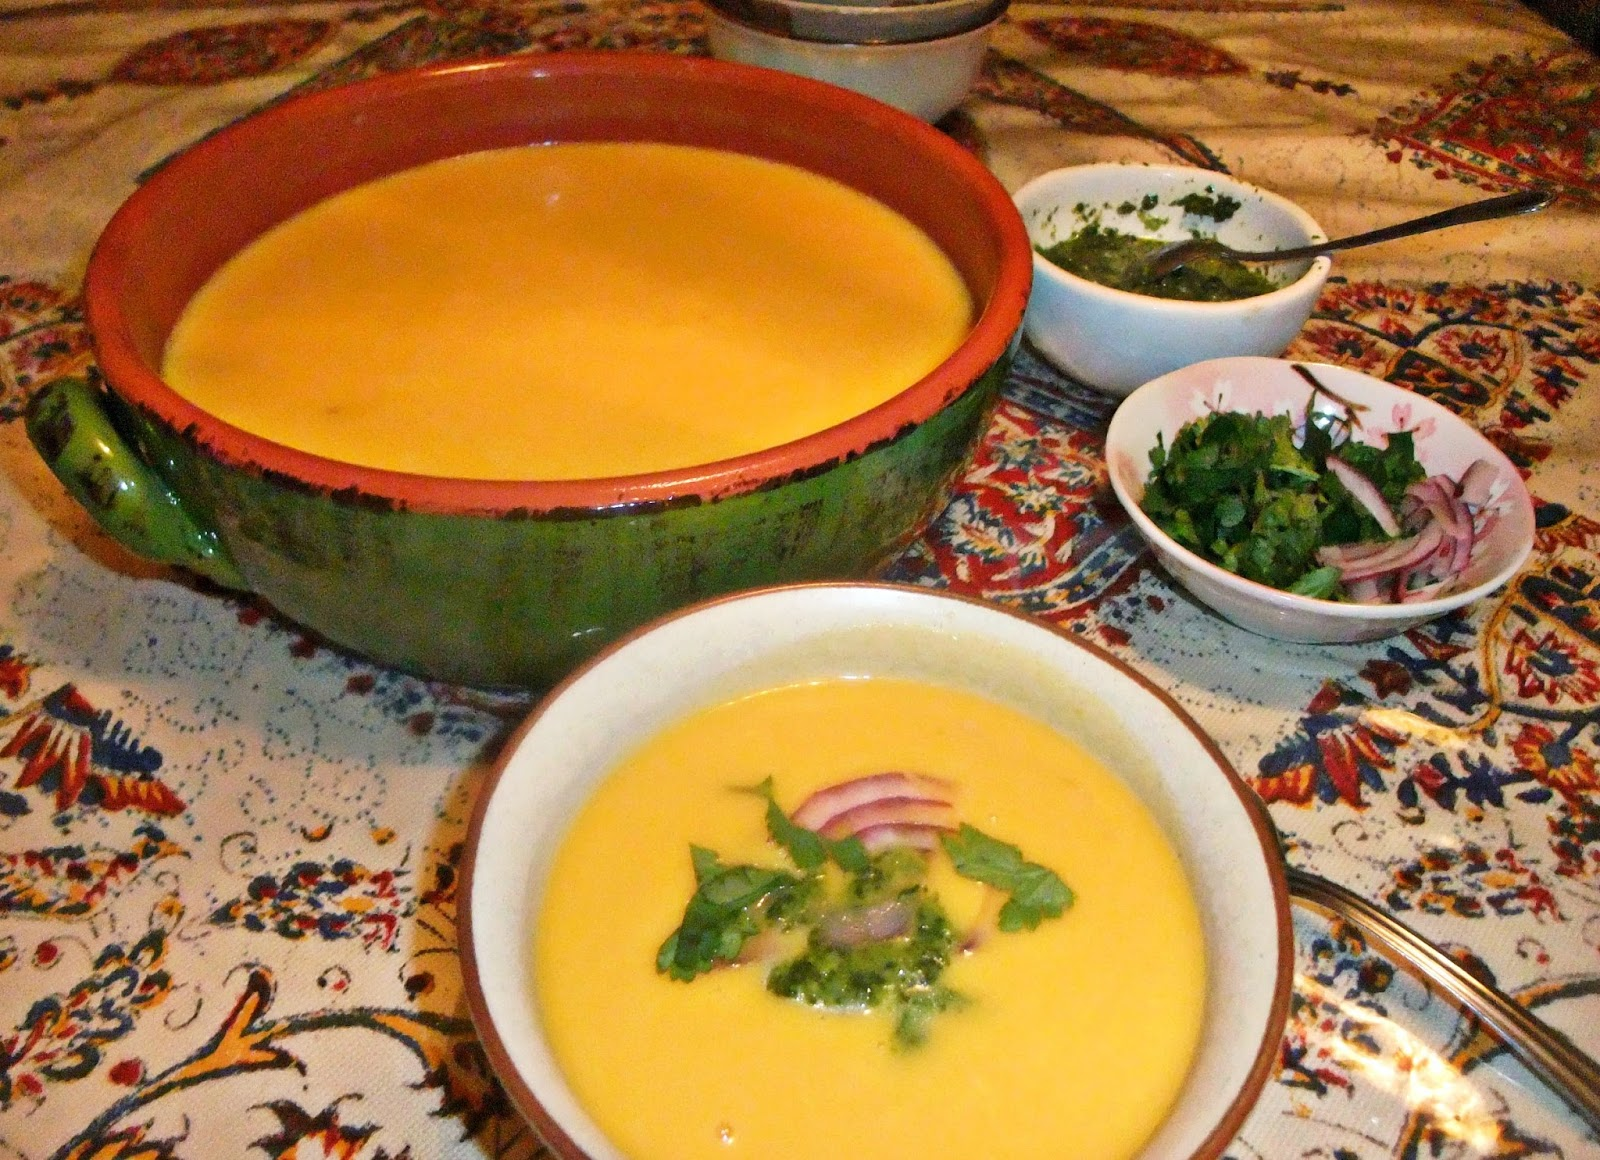 Susan's Savour-It!: Thai-Style Pumpkin Soup with Cilantro ...